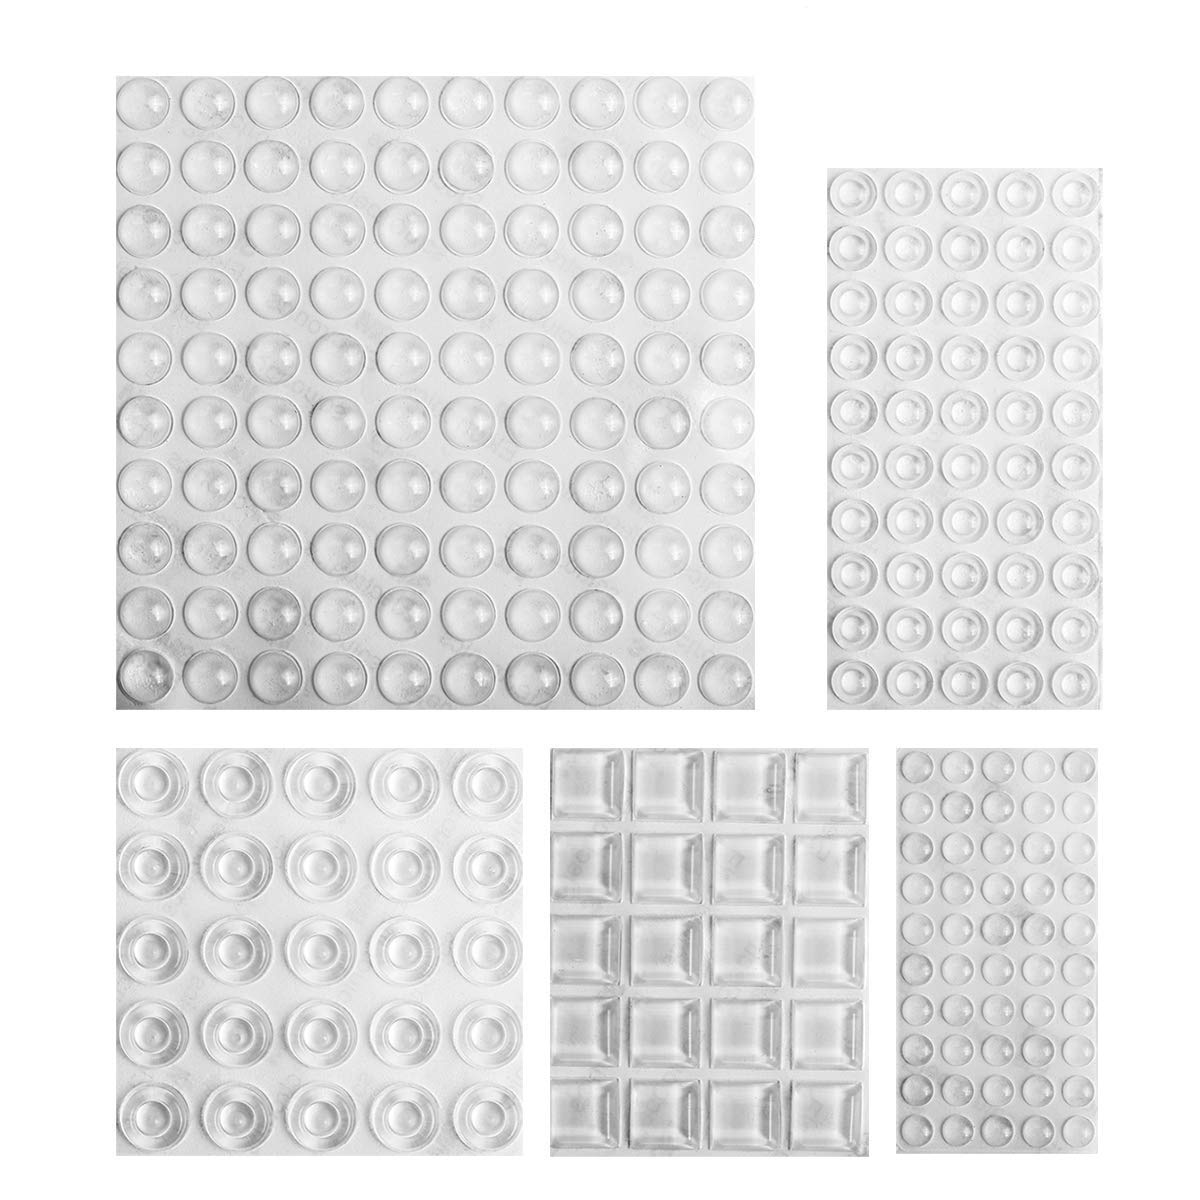 Clear Rubber Feet Bumpers Pads - 245 Pieces Self Adhesive Transparent Stick Bumper Pads Noise Dampening Buffer Bumpers, 5 Shapes for Cabinet Doors, Drawers, Glass Tops, Picture Frames, Cutting Boards